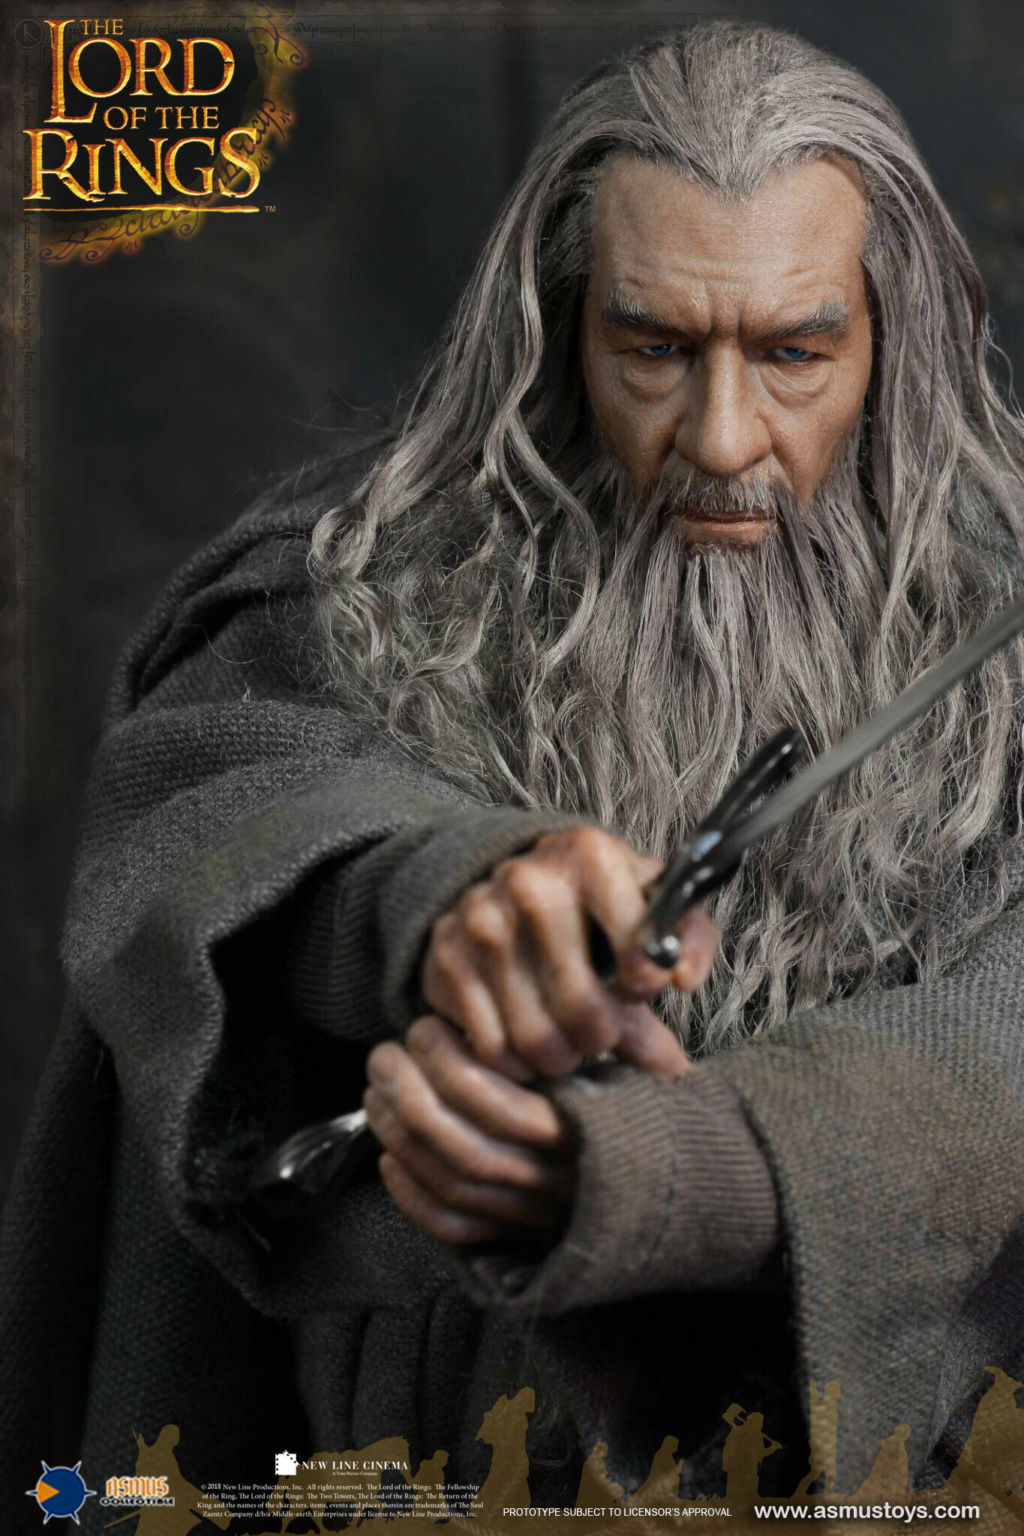 lordoftherings - NEW PRODUCT: ASMUS TOYS THE CROWN SERIES : GANDALF THE GREY 1/6 figure 6220